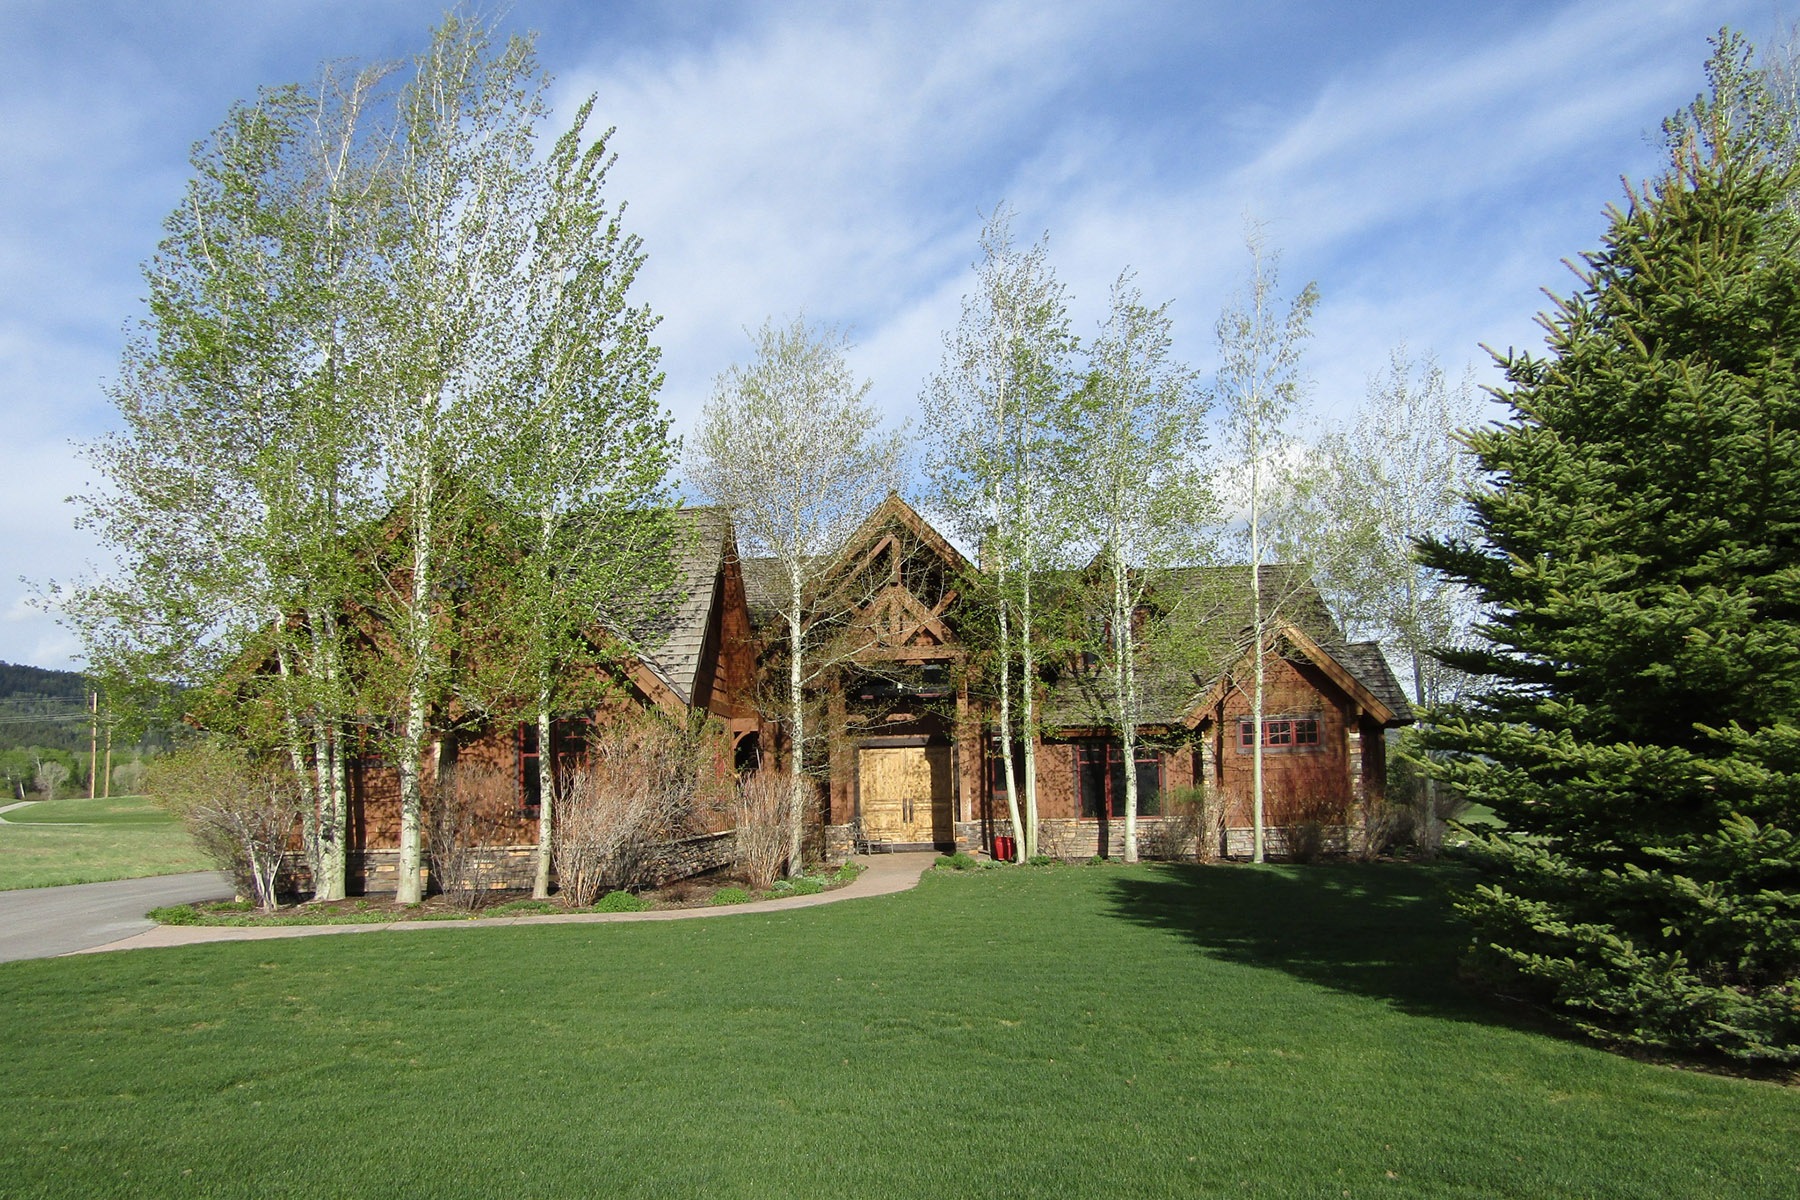 Single Family Homes for Active at Teton Springs Elegance on the 7th Hole 8 Winger Cir Victor, Idaho 83455 United States